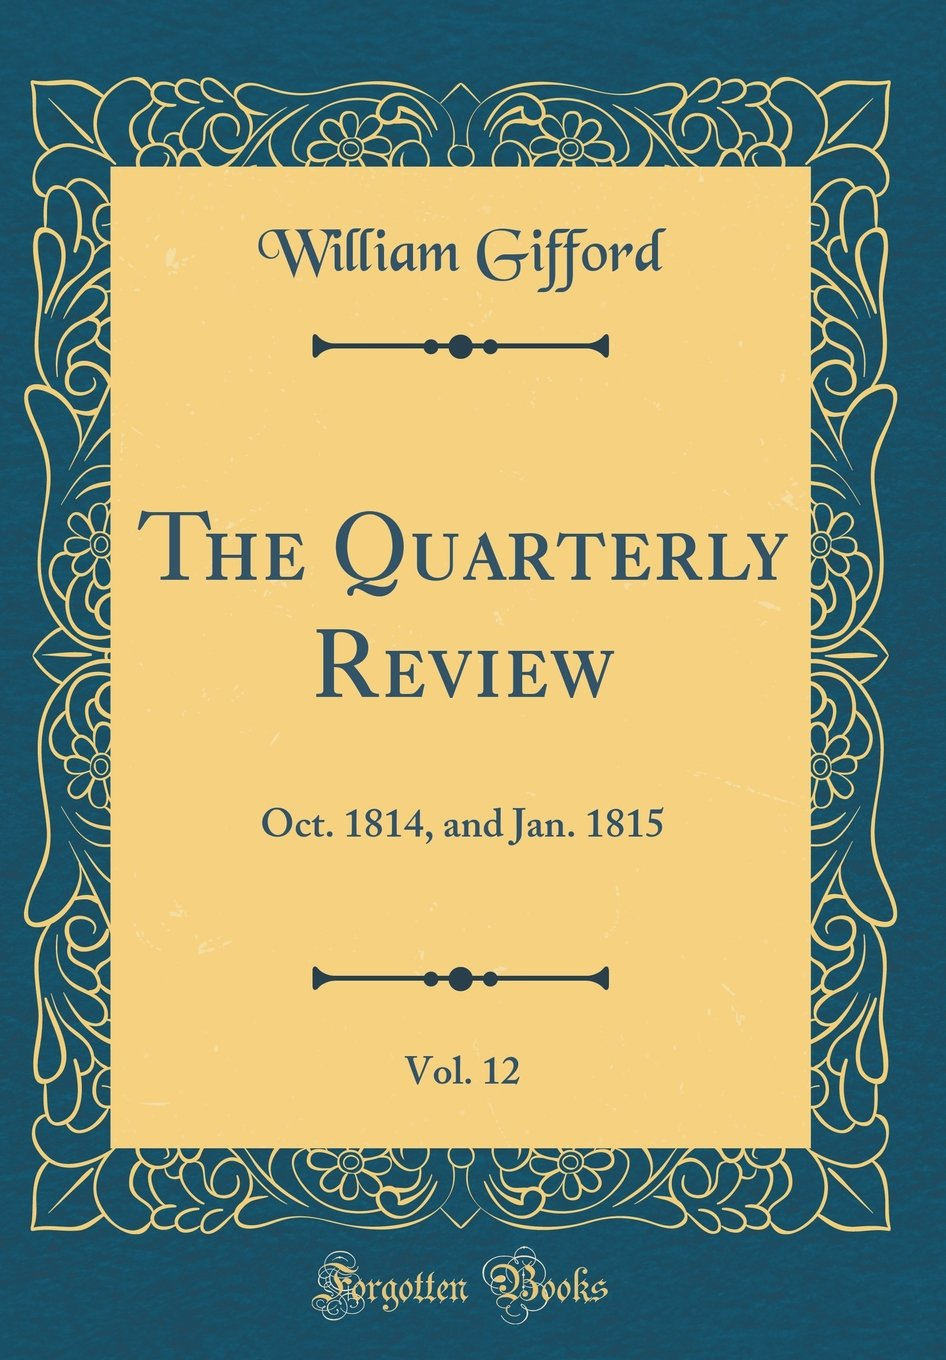 Read Online The Quarterly Review, Vol. 12: Oct. 1814, and Jan. 1815 (Classic Reprint) PDF